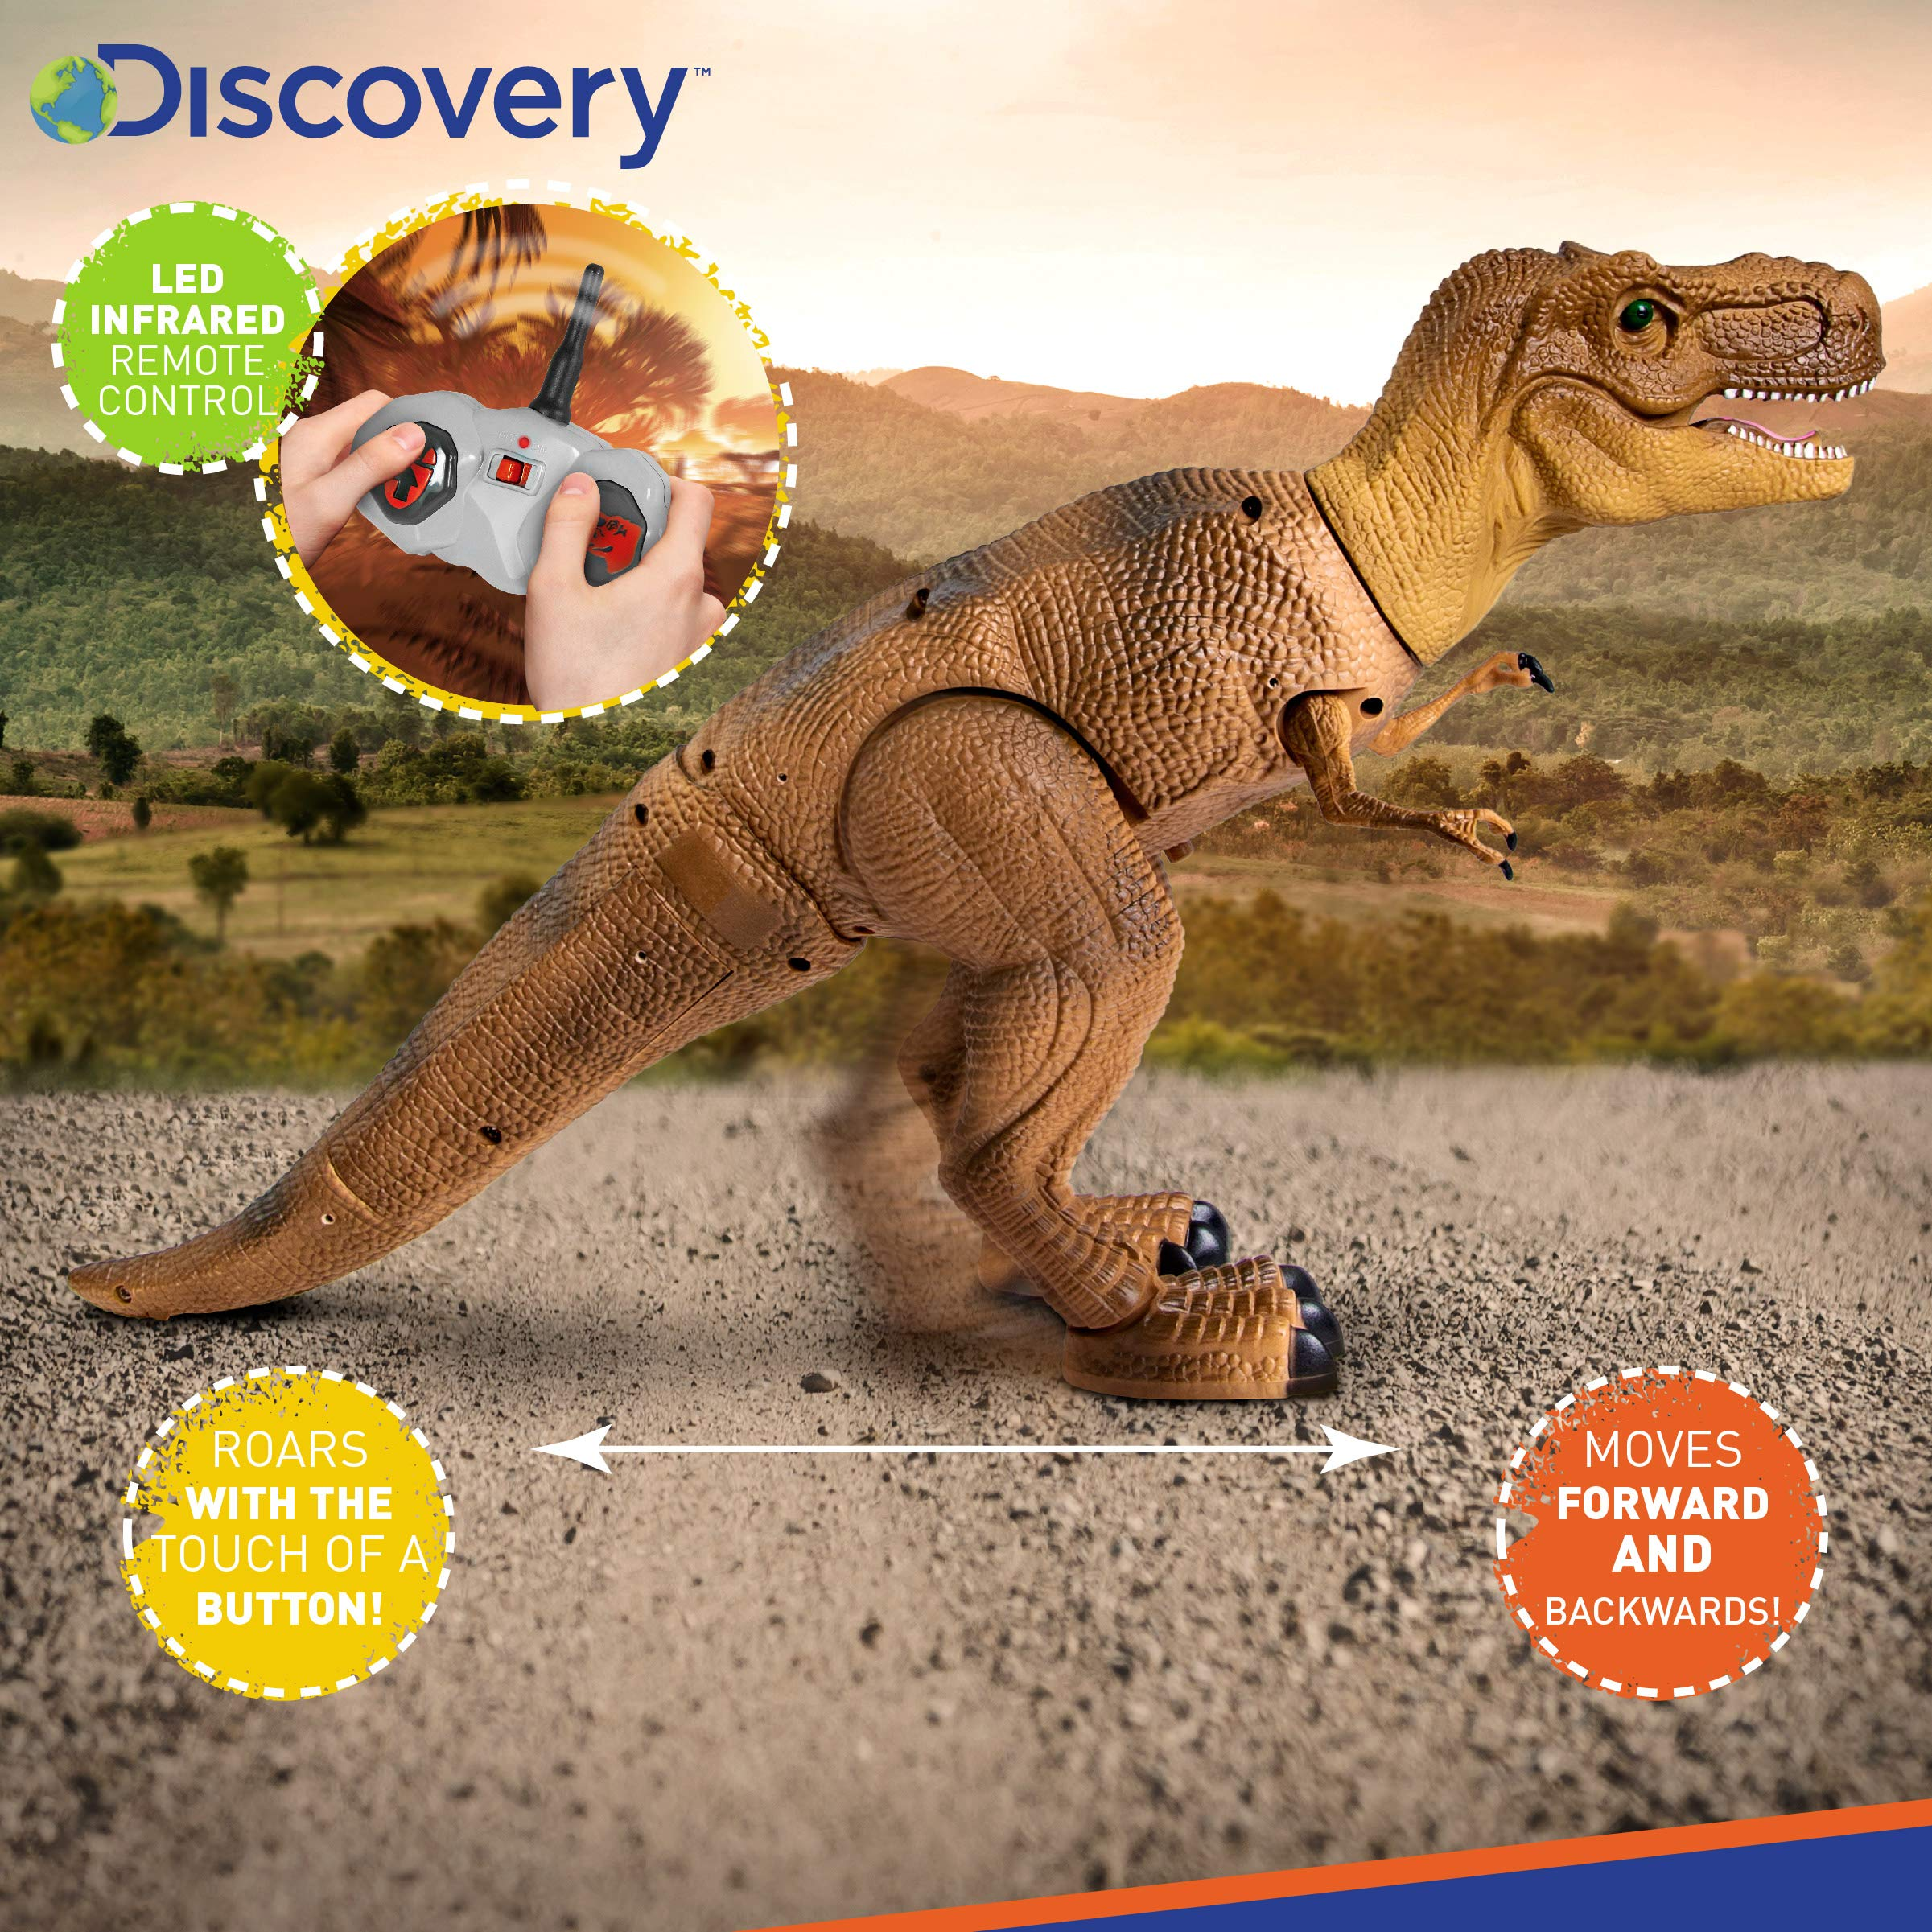 Discovery Kids Remote Control RC T Rex Dinosaur Electronic Toy Action Figure Moving & Walking Robot w/Roaring Sounds & Chomping Mouth, Realistic Plastic Model, Boys & Girls 6 Years Old+ by Discovery Kids (Image #4)